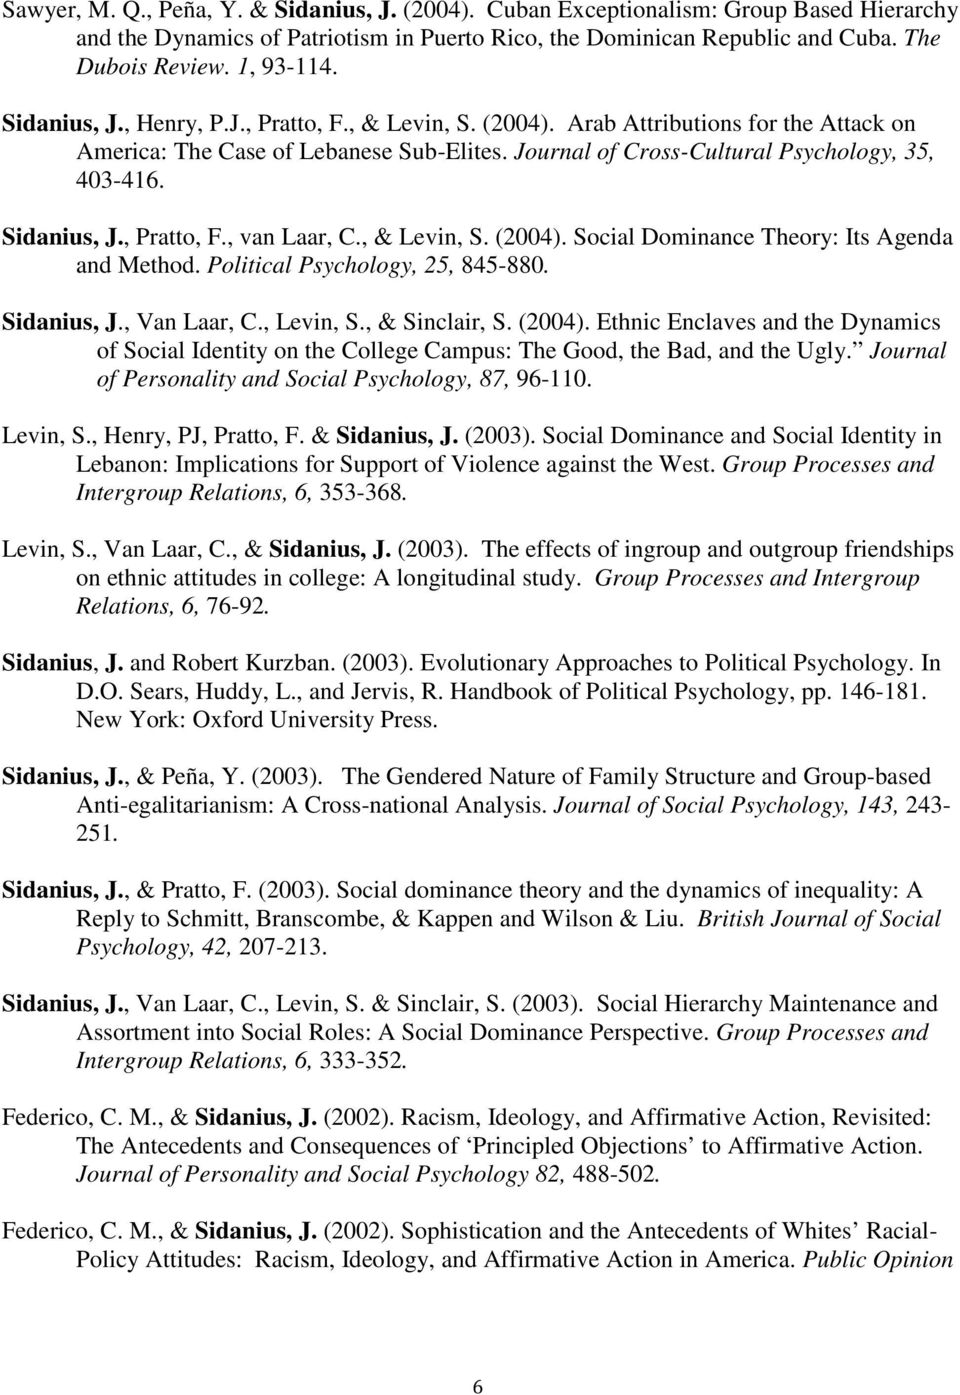 , Pratto, F., van Laar, C., & Levin, S. (2004). Social Dominance Theory: Its Agenda and Method. Political Psychology, 25, 845-880. Sidanius, J., Van Laar, C., Levin, S., & Sinclair, S. (2004). Ethnic Enclaves and the Dynamics of Social Identity on the College Campus: The Good, the Bad, and the Ugly.